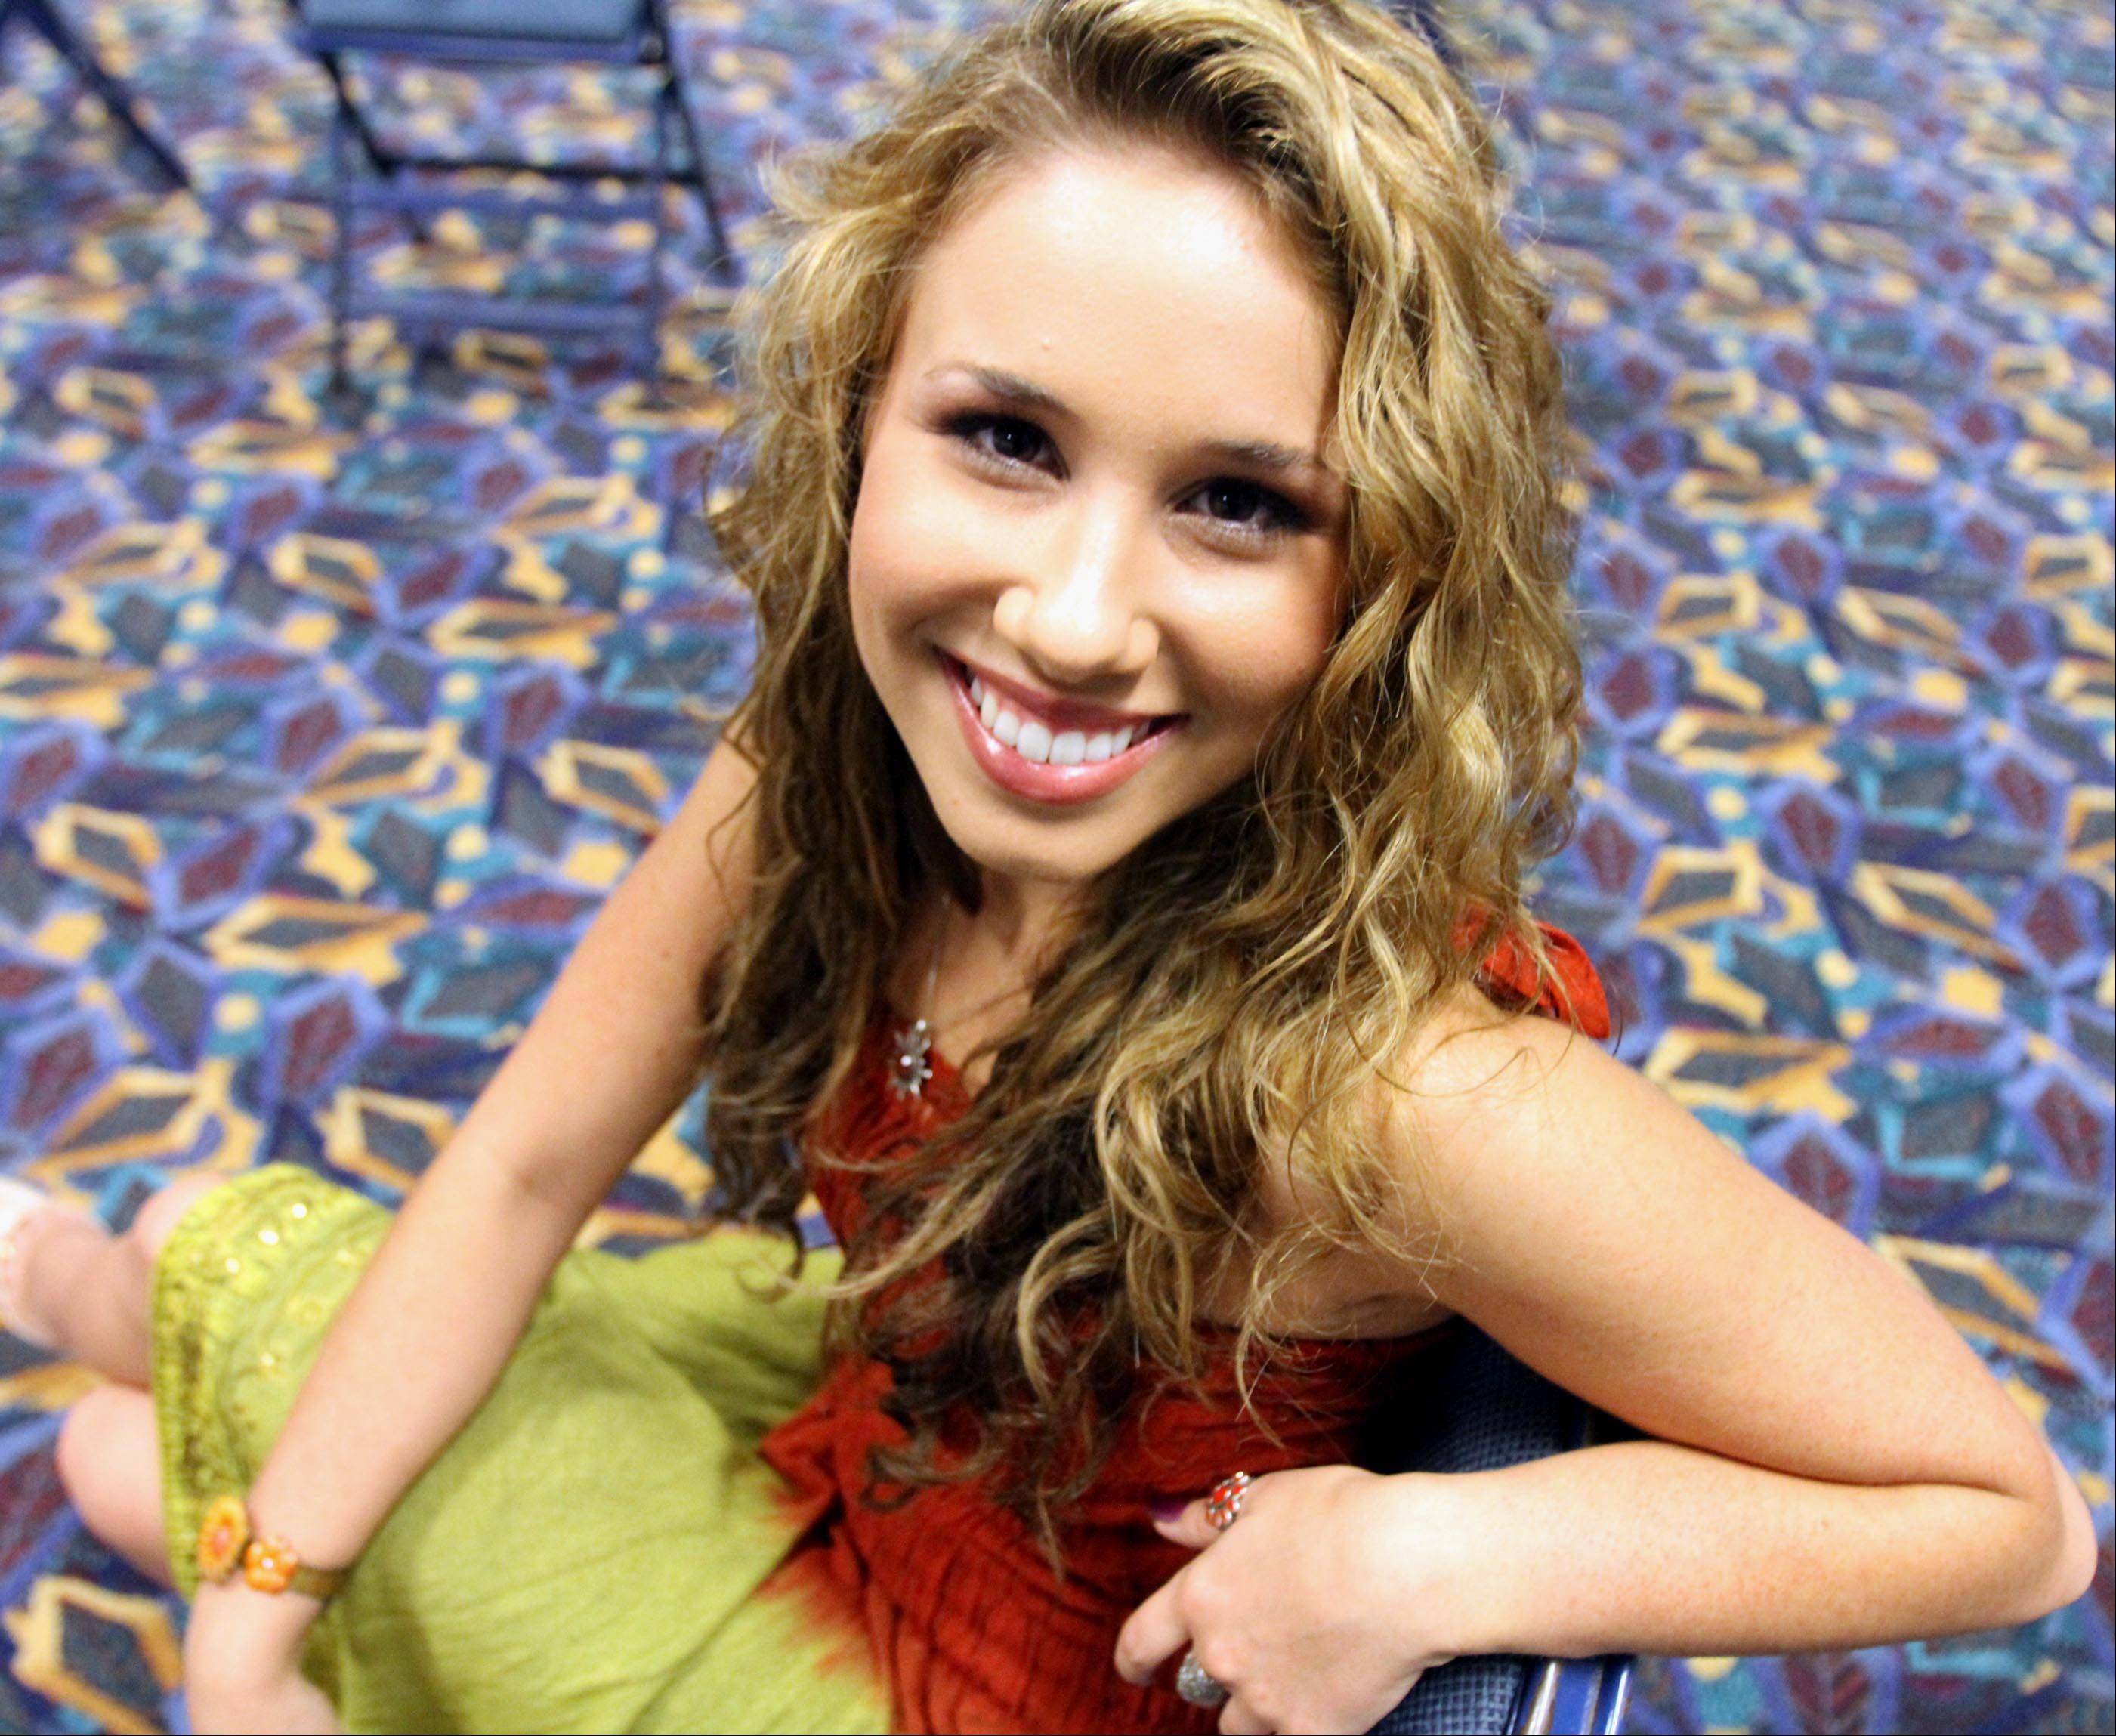 Haley Reinhart poses for a photograph before the concert Saturday.